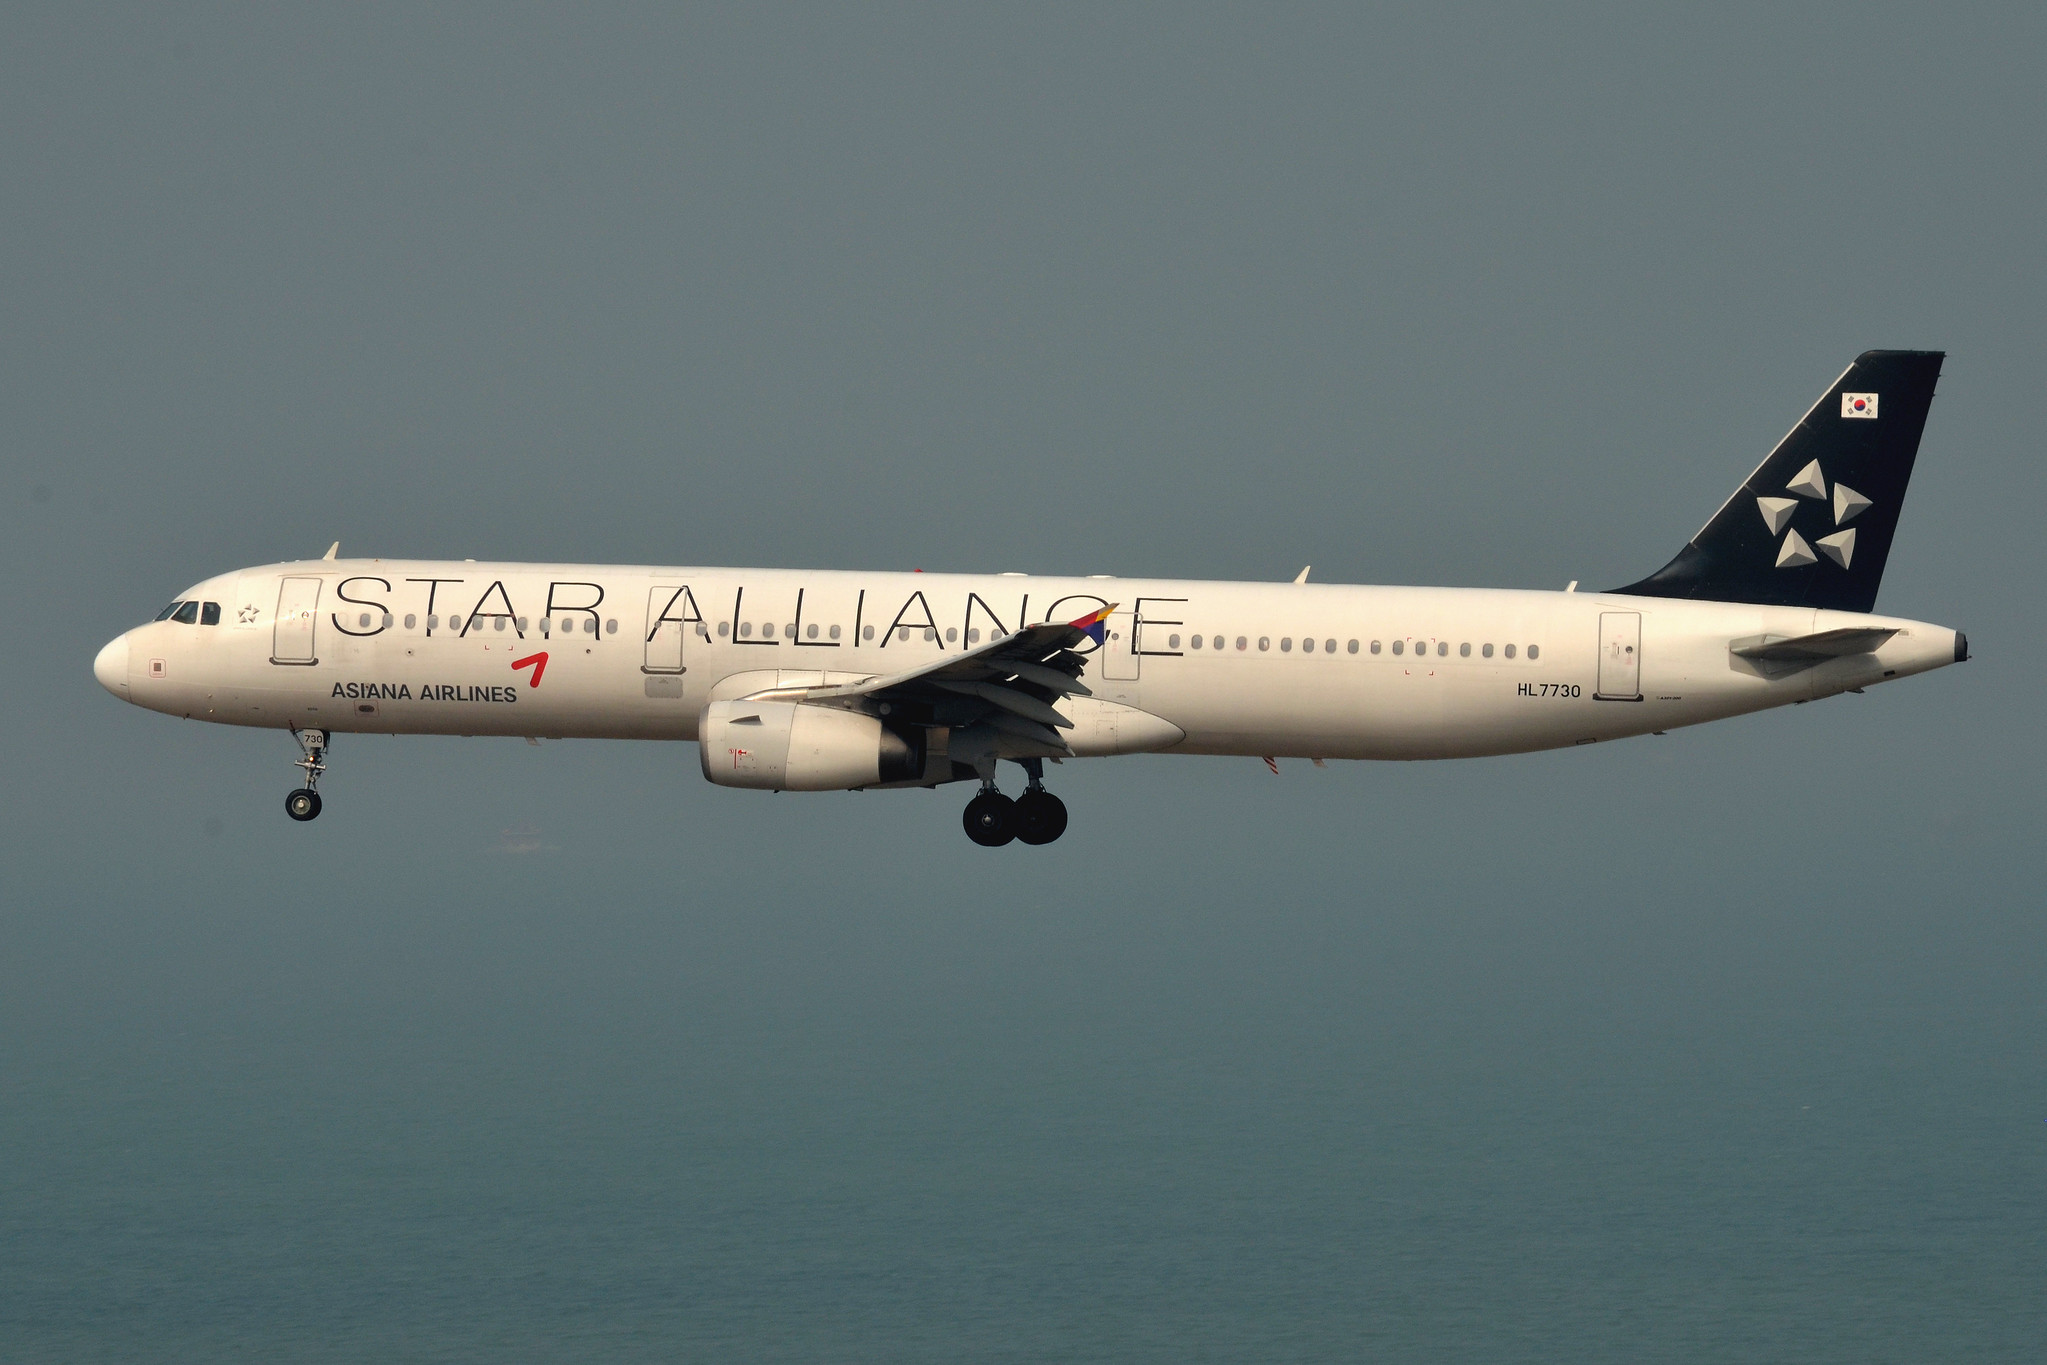 Asiana Airlines HL7730